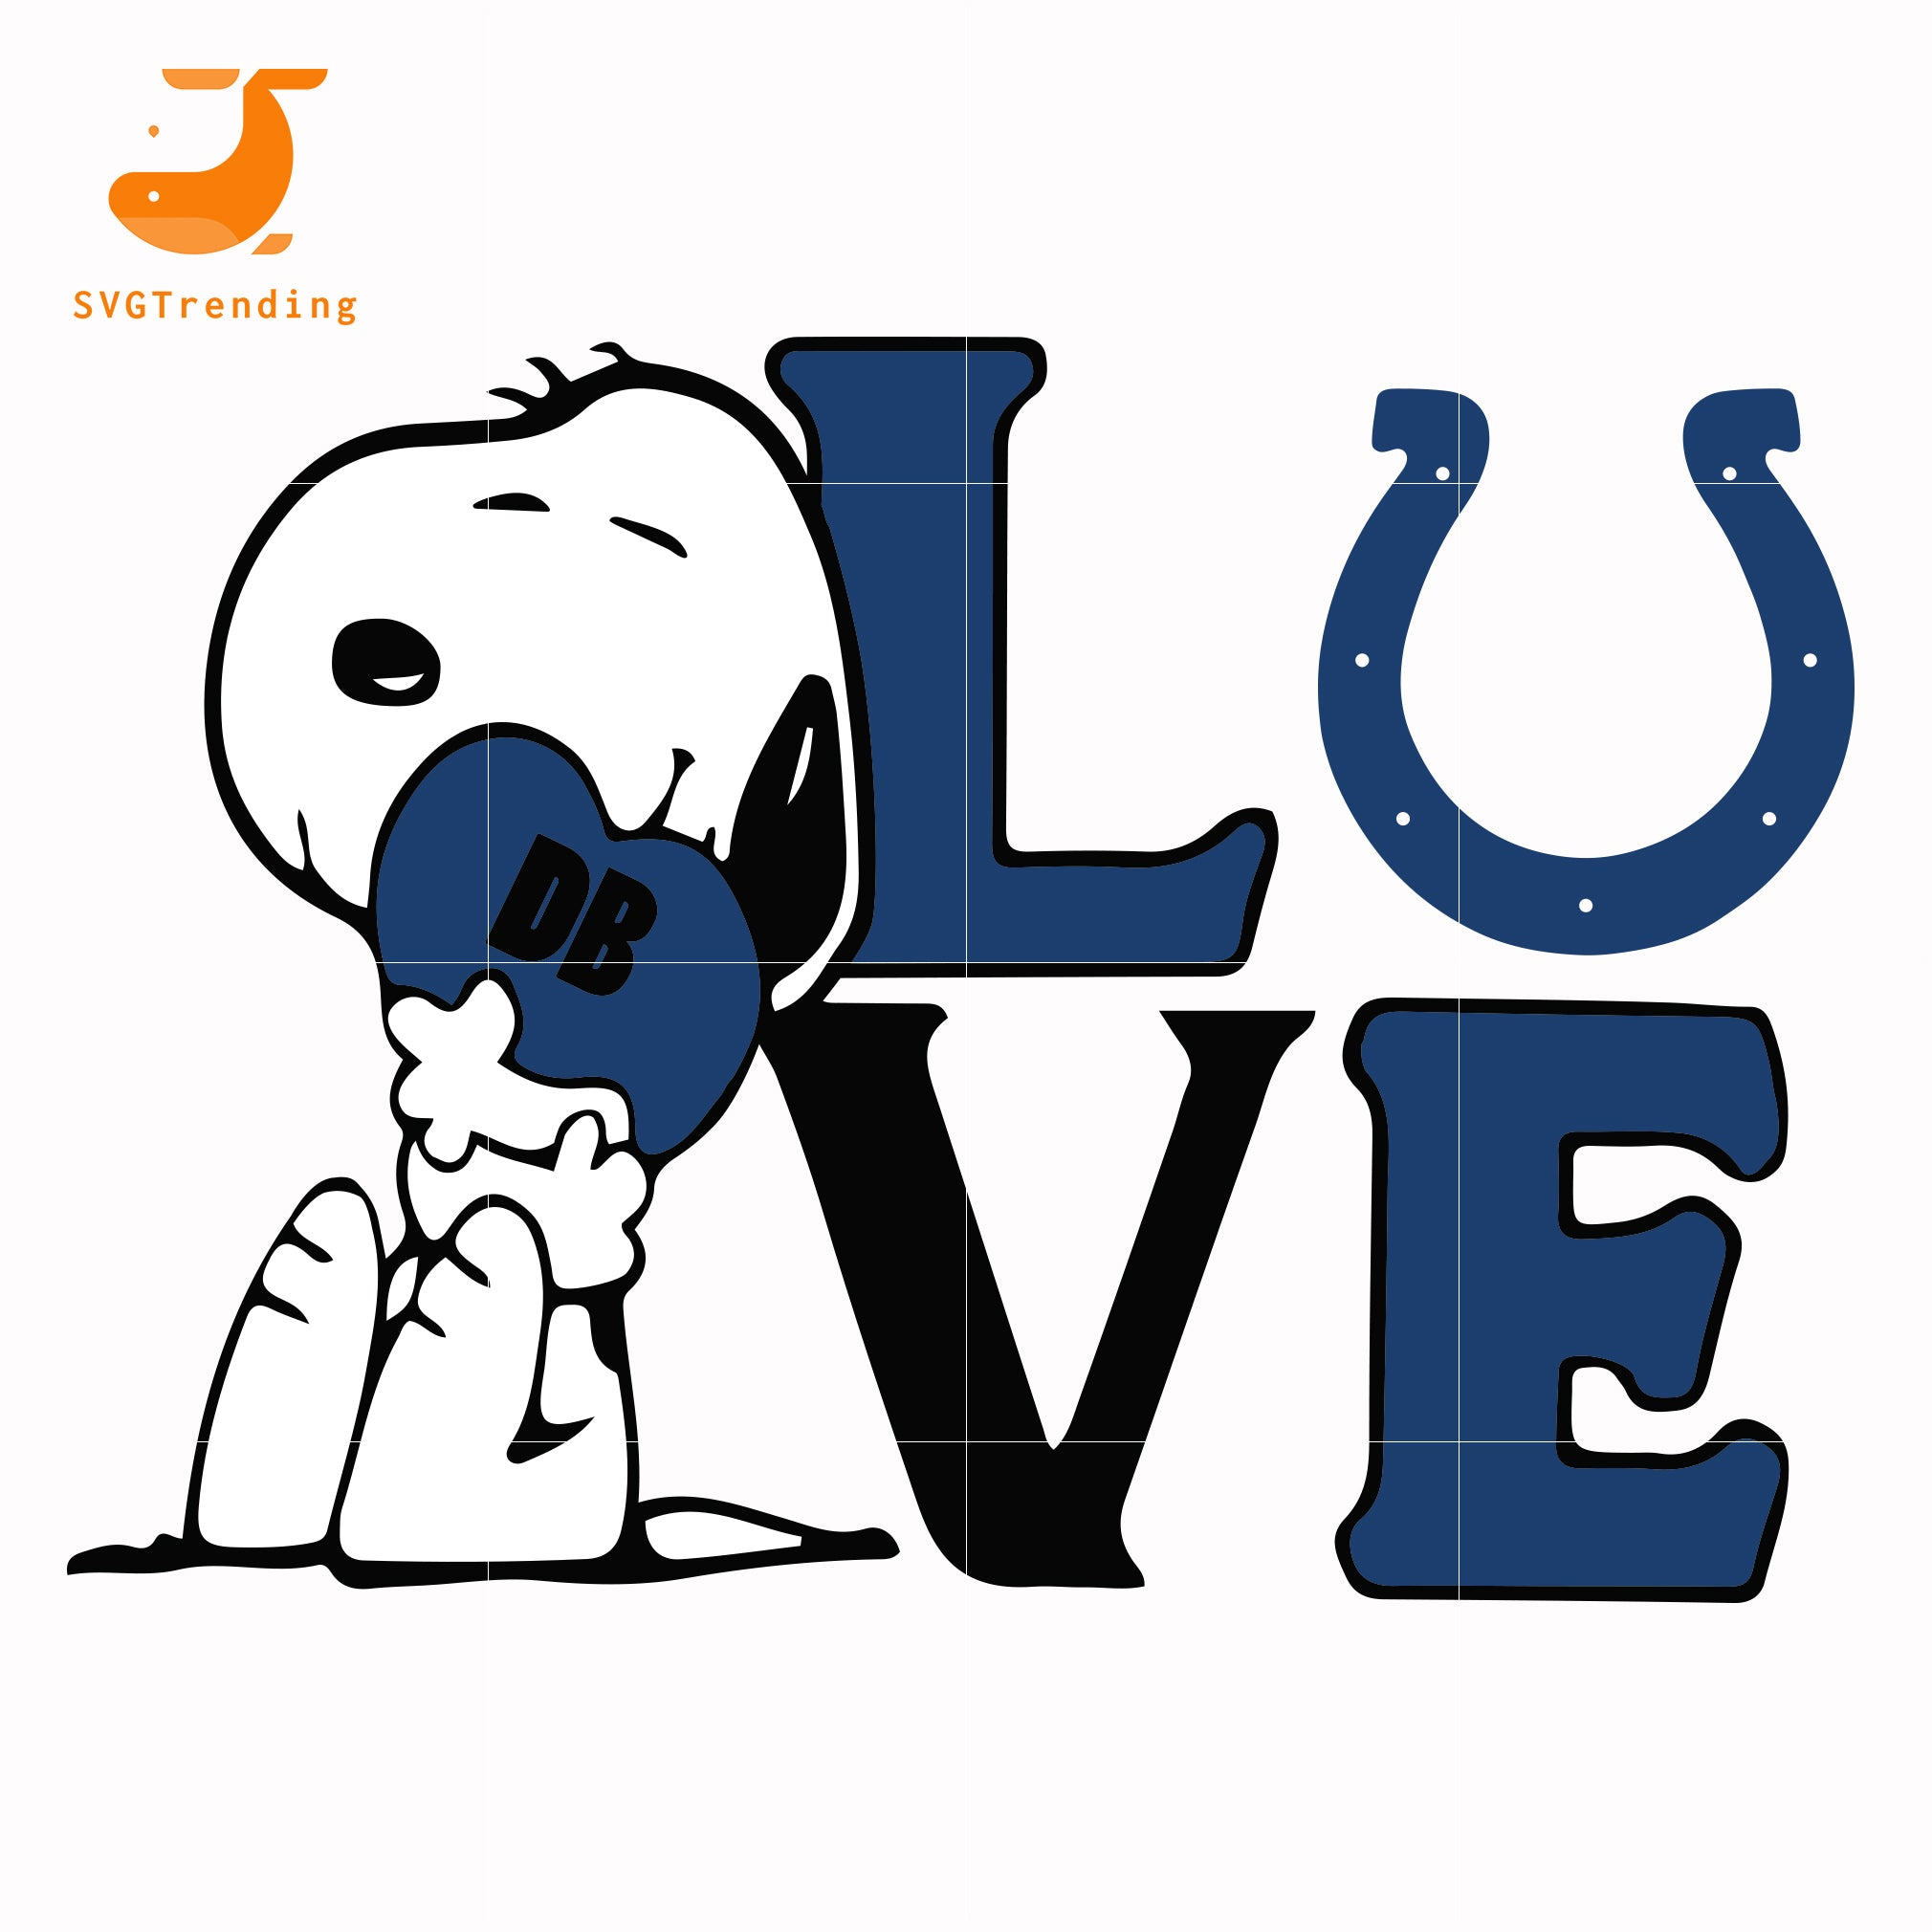 Snoopy Love Indianapolis Colts Svg Png Dxf Eps Digital File Td13 Svgtrending